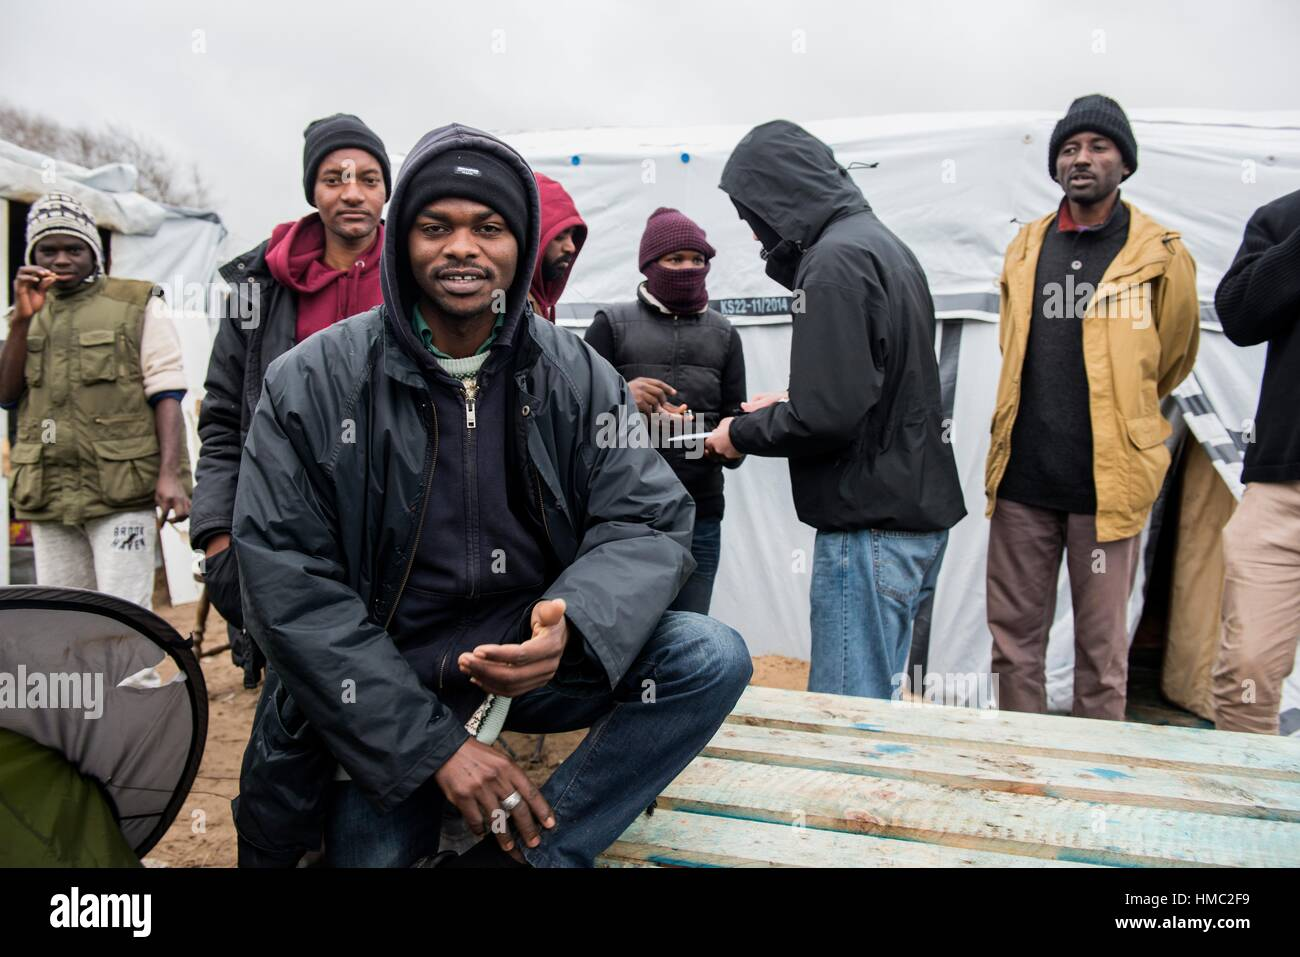 Calais, France. Group of Sudani migrants in The Jungle of Calais, deliberating about ways to travel to the UK. - Stock Image